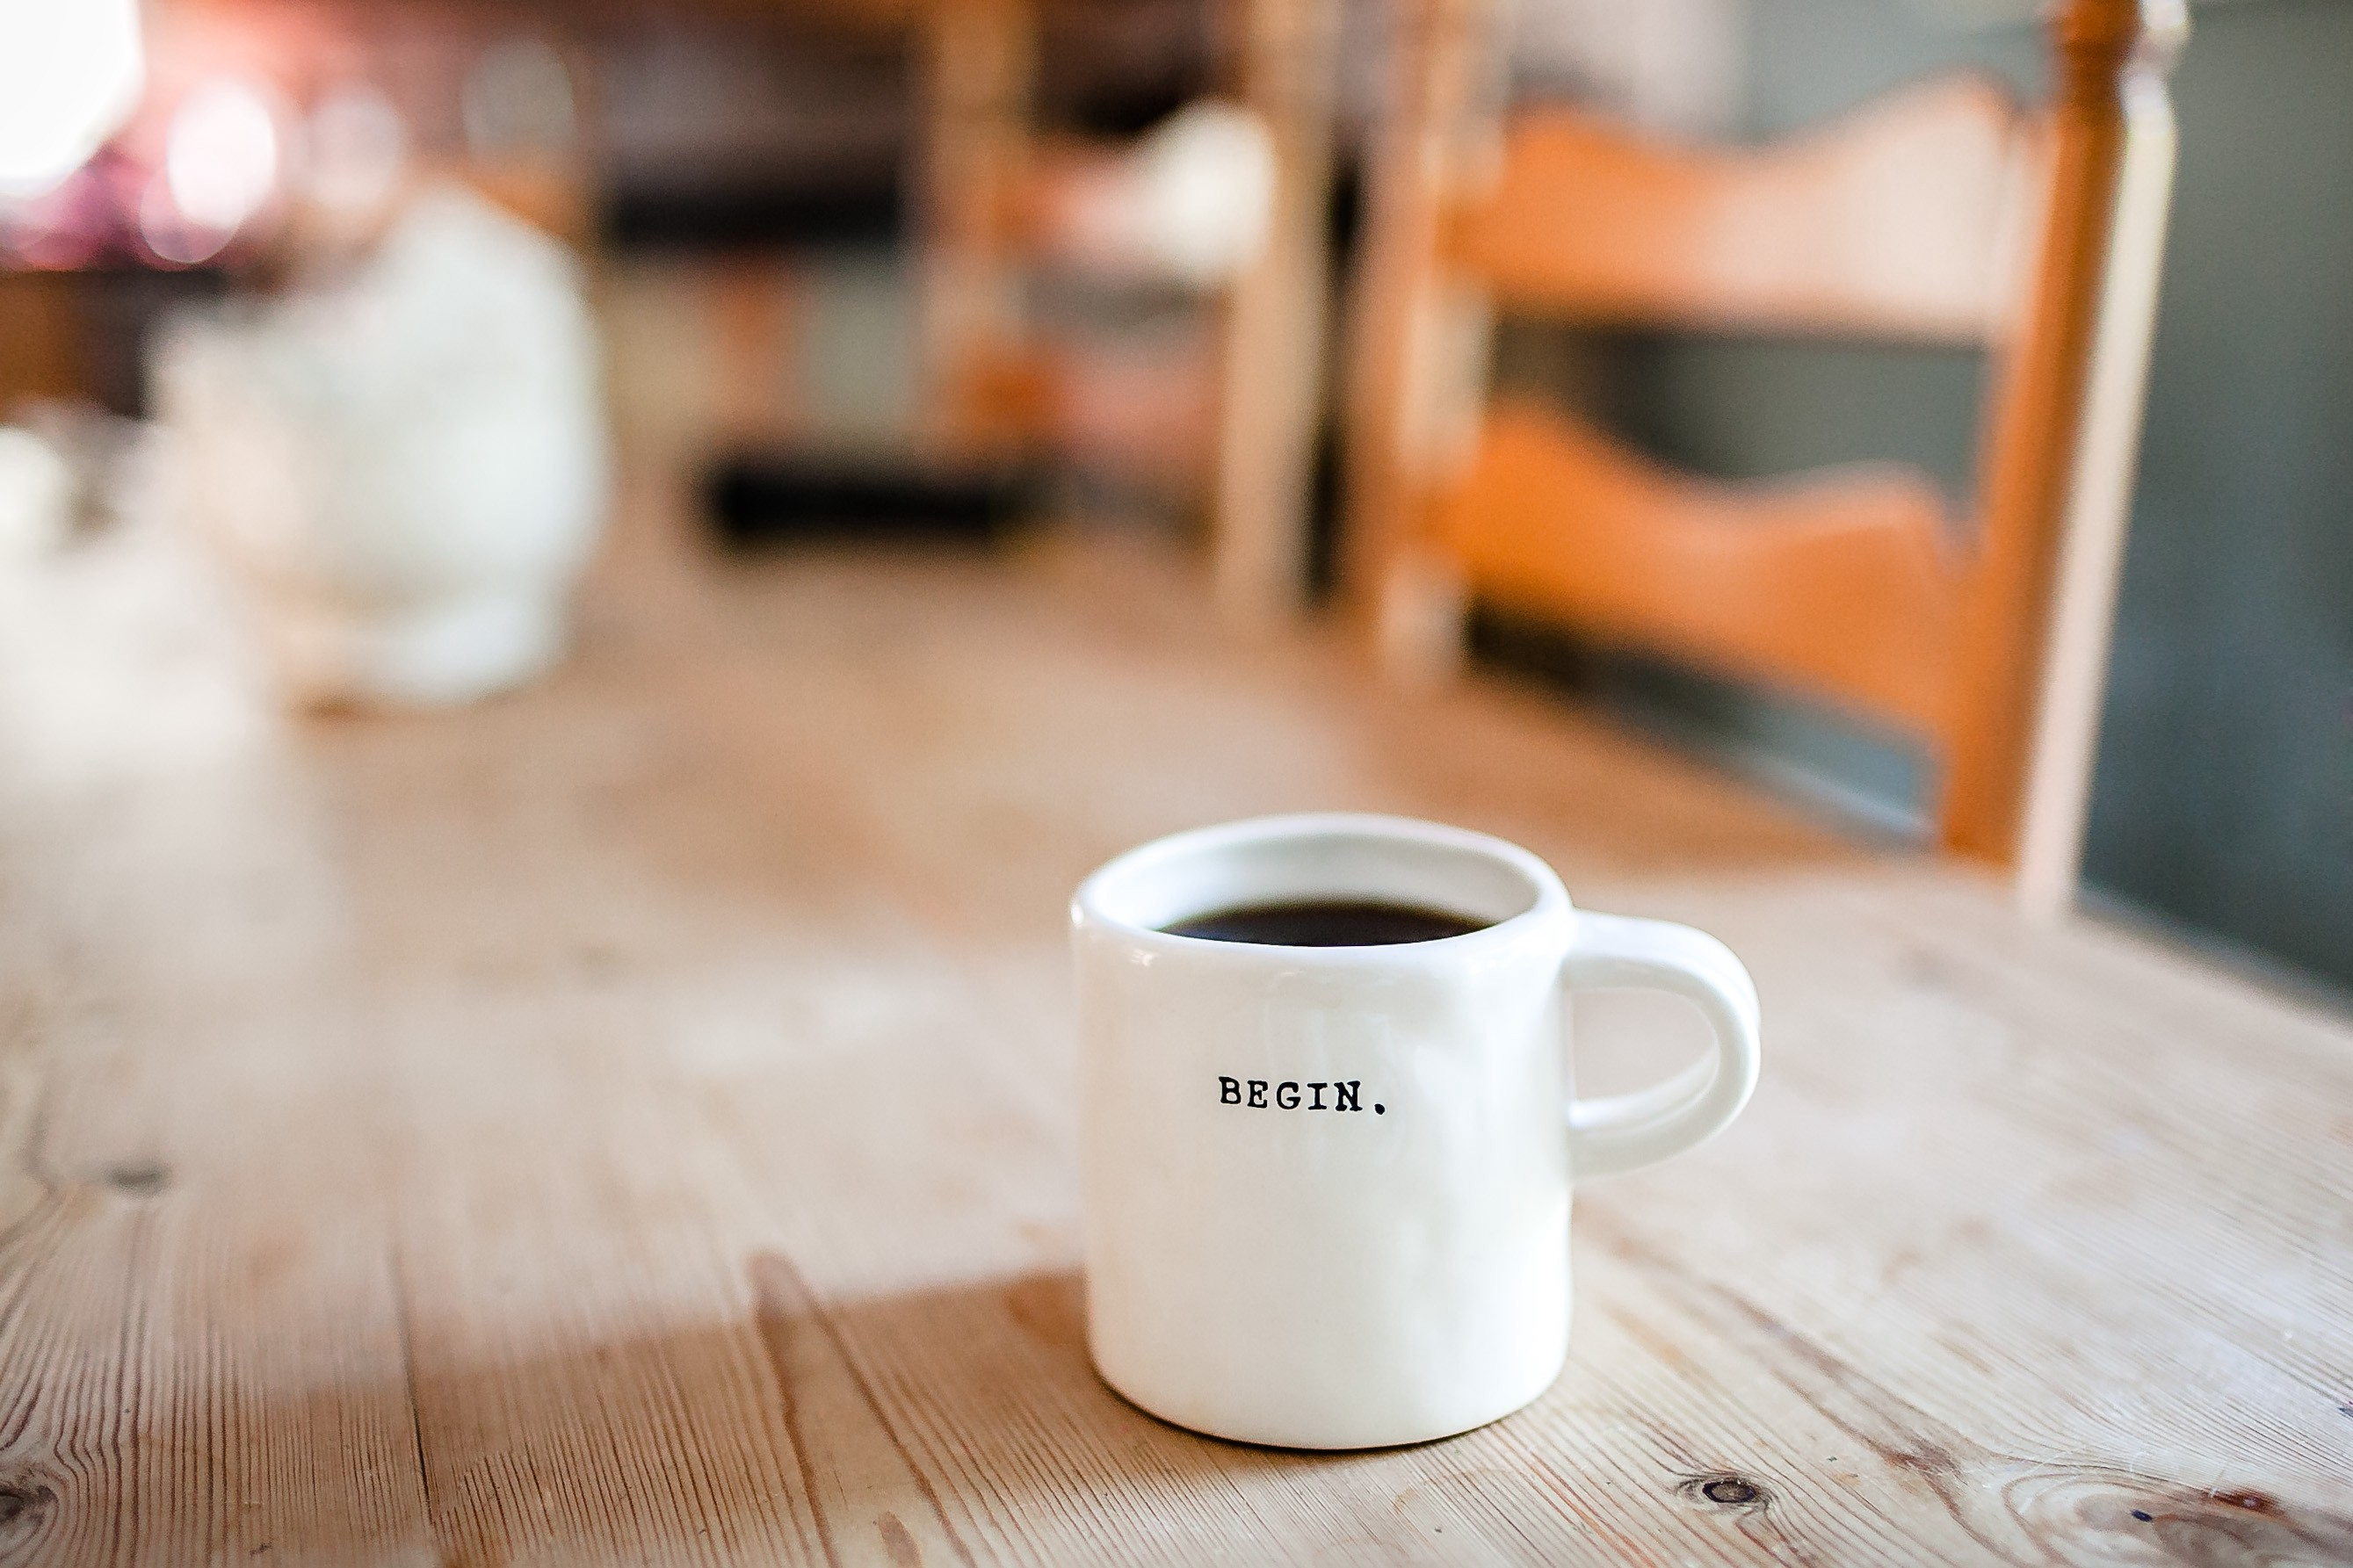 """White, filled coffee mug with text """"BEGIN."""" on it, on a wooden table."""